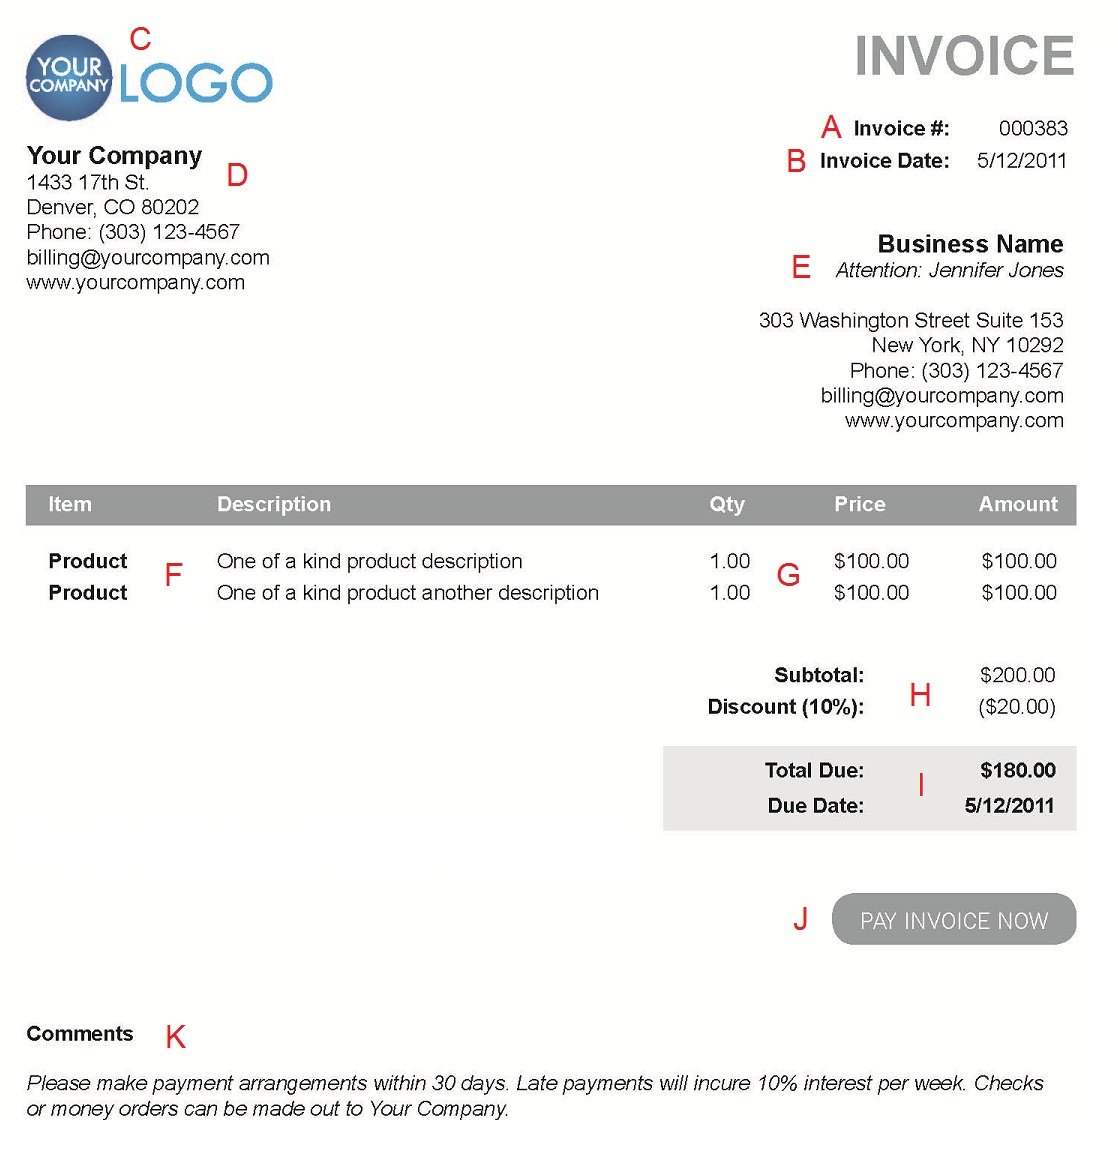 Pigbrotherus  Stunning The  Different Sections Of An Electronic Payment Invoice With Hot A  With Delightful Blank Tax Invoice Also Free Proforma Invoice In Addition Invoicing Freeware And Fillable Canada Customs Invoice As Well As Invoice Styles Additionally Import Invoice From Paysimplecom With Pigbrotherus  Hot The  Different Sections Of An Electronic Payment Invoice With Delightful A  And Stunning Blank Tax Invoice Also Free Proforma Invoice In Addition Invoicing Freeware From Paysimplecom